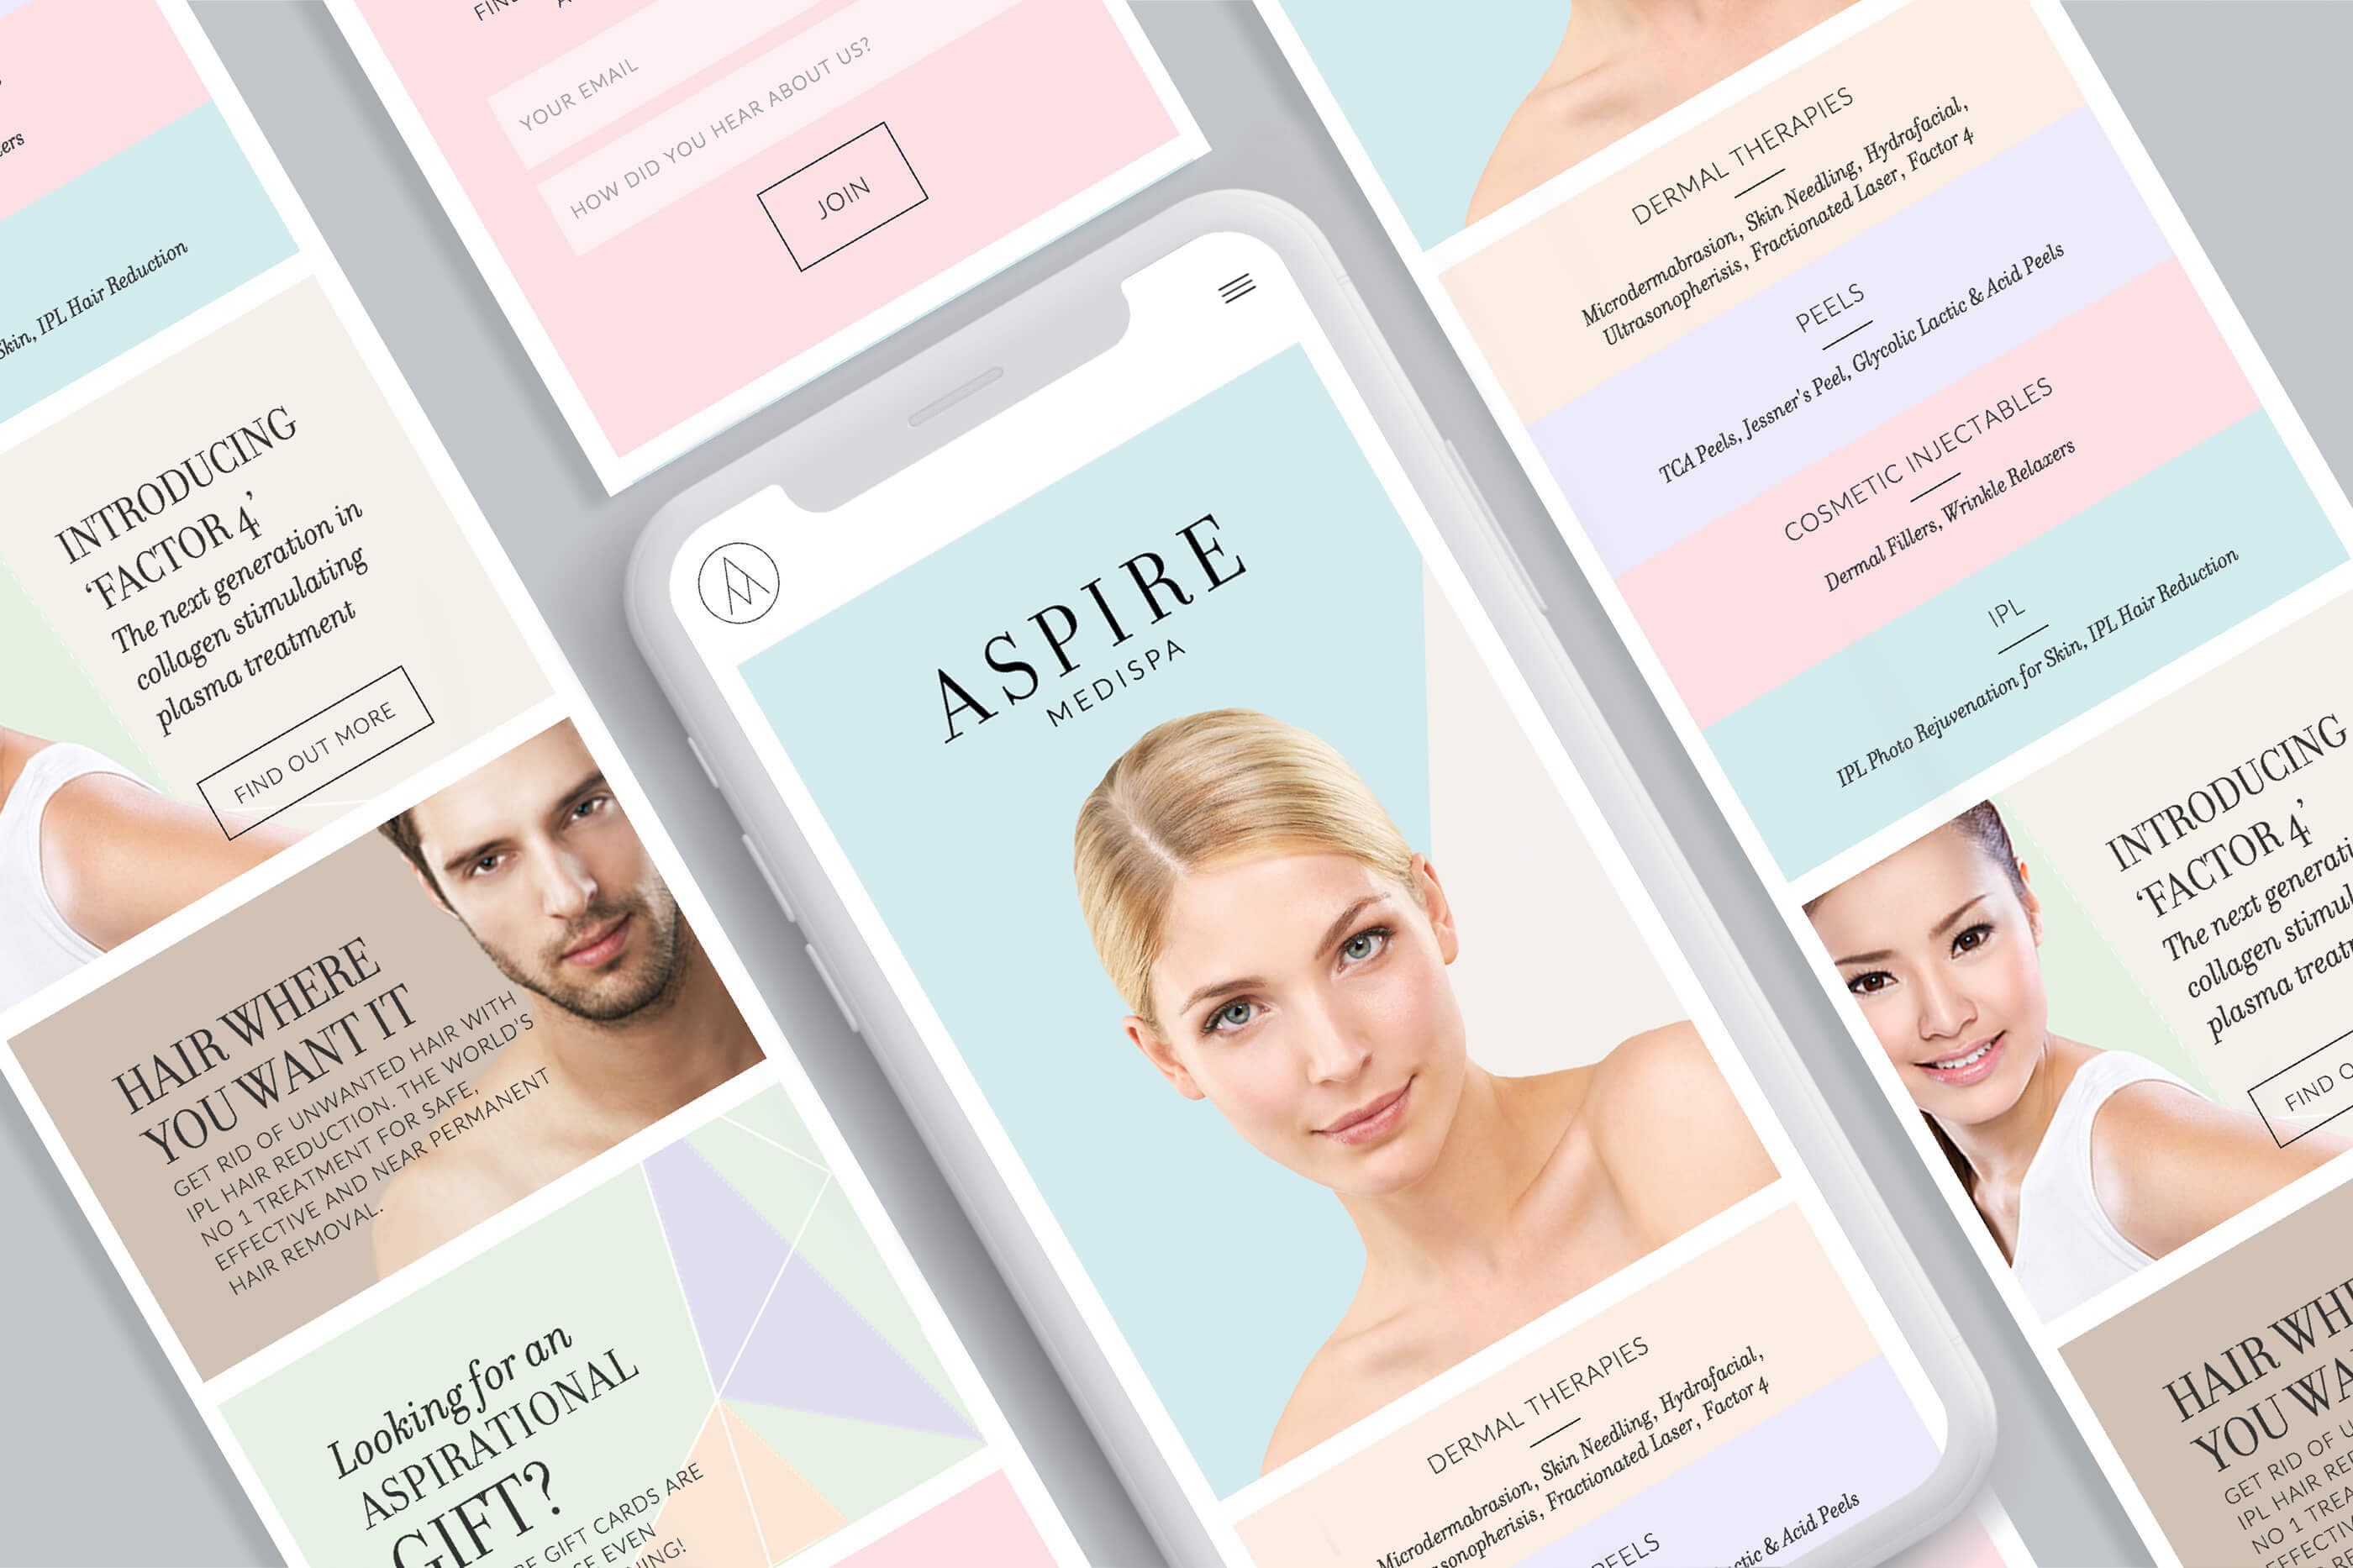 aspire-medispa-website-design-mobile